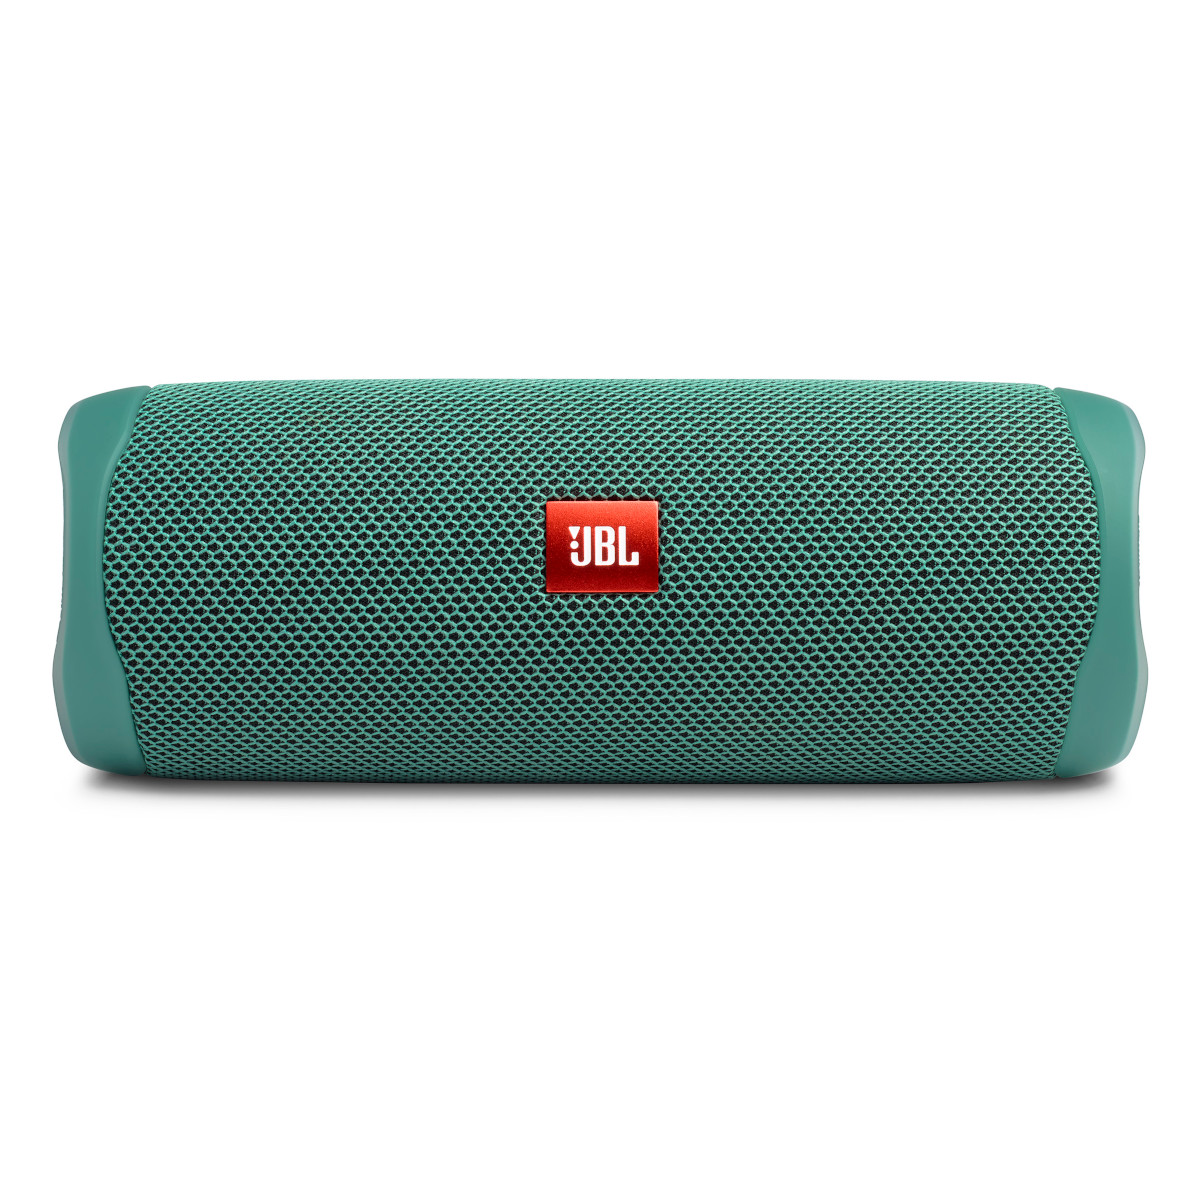 JBL Flip 5 ECO Portable Waterproof Bluetooth Speaker Made From 90% Recycled Plastic (Forest Green)